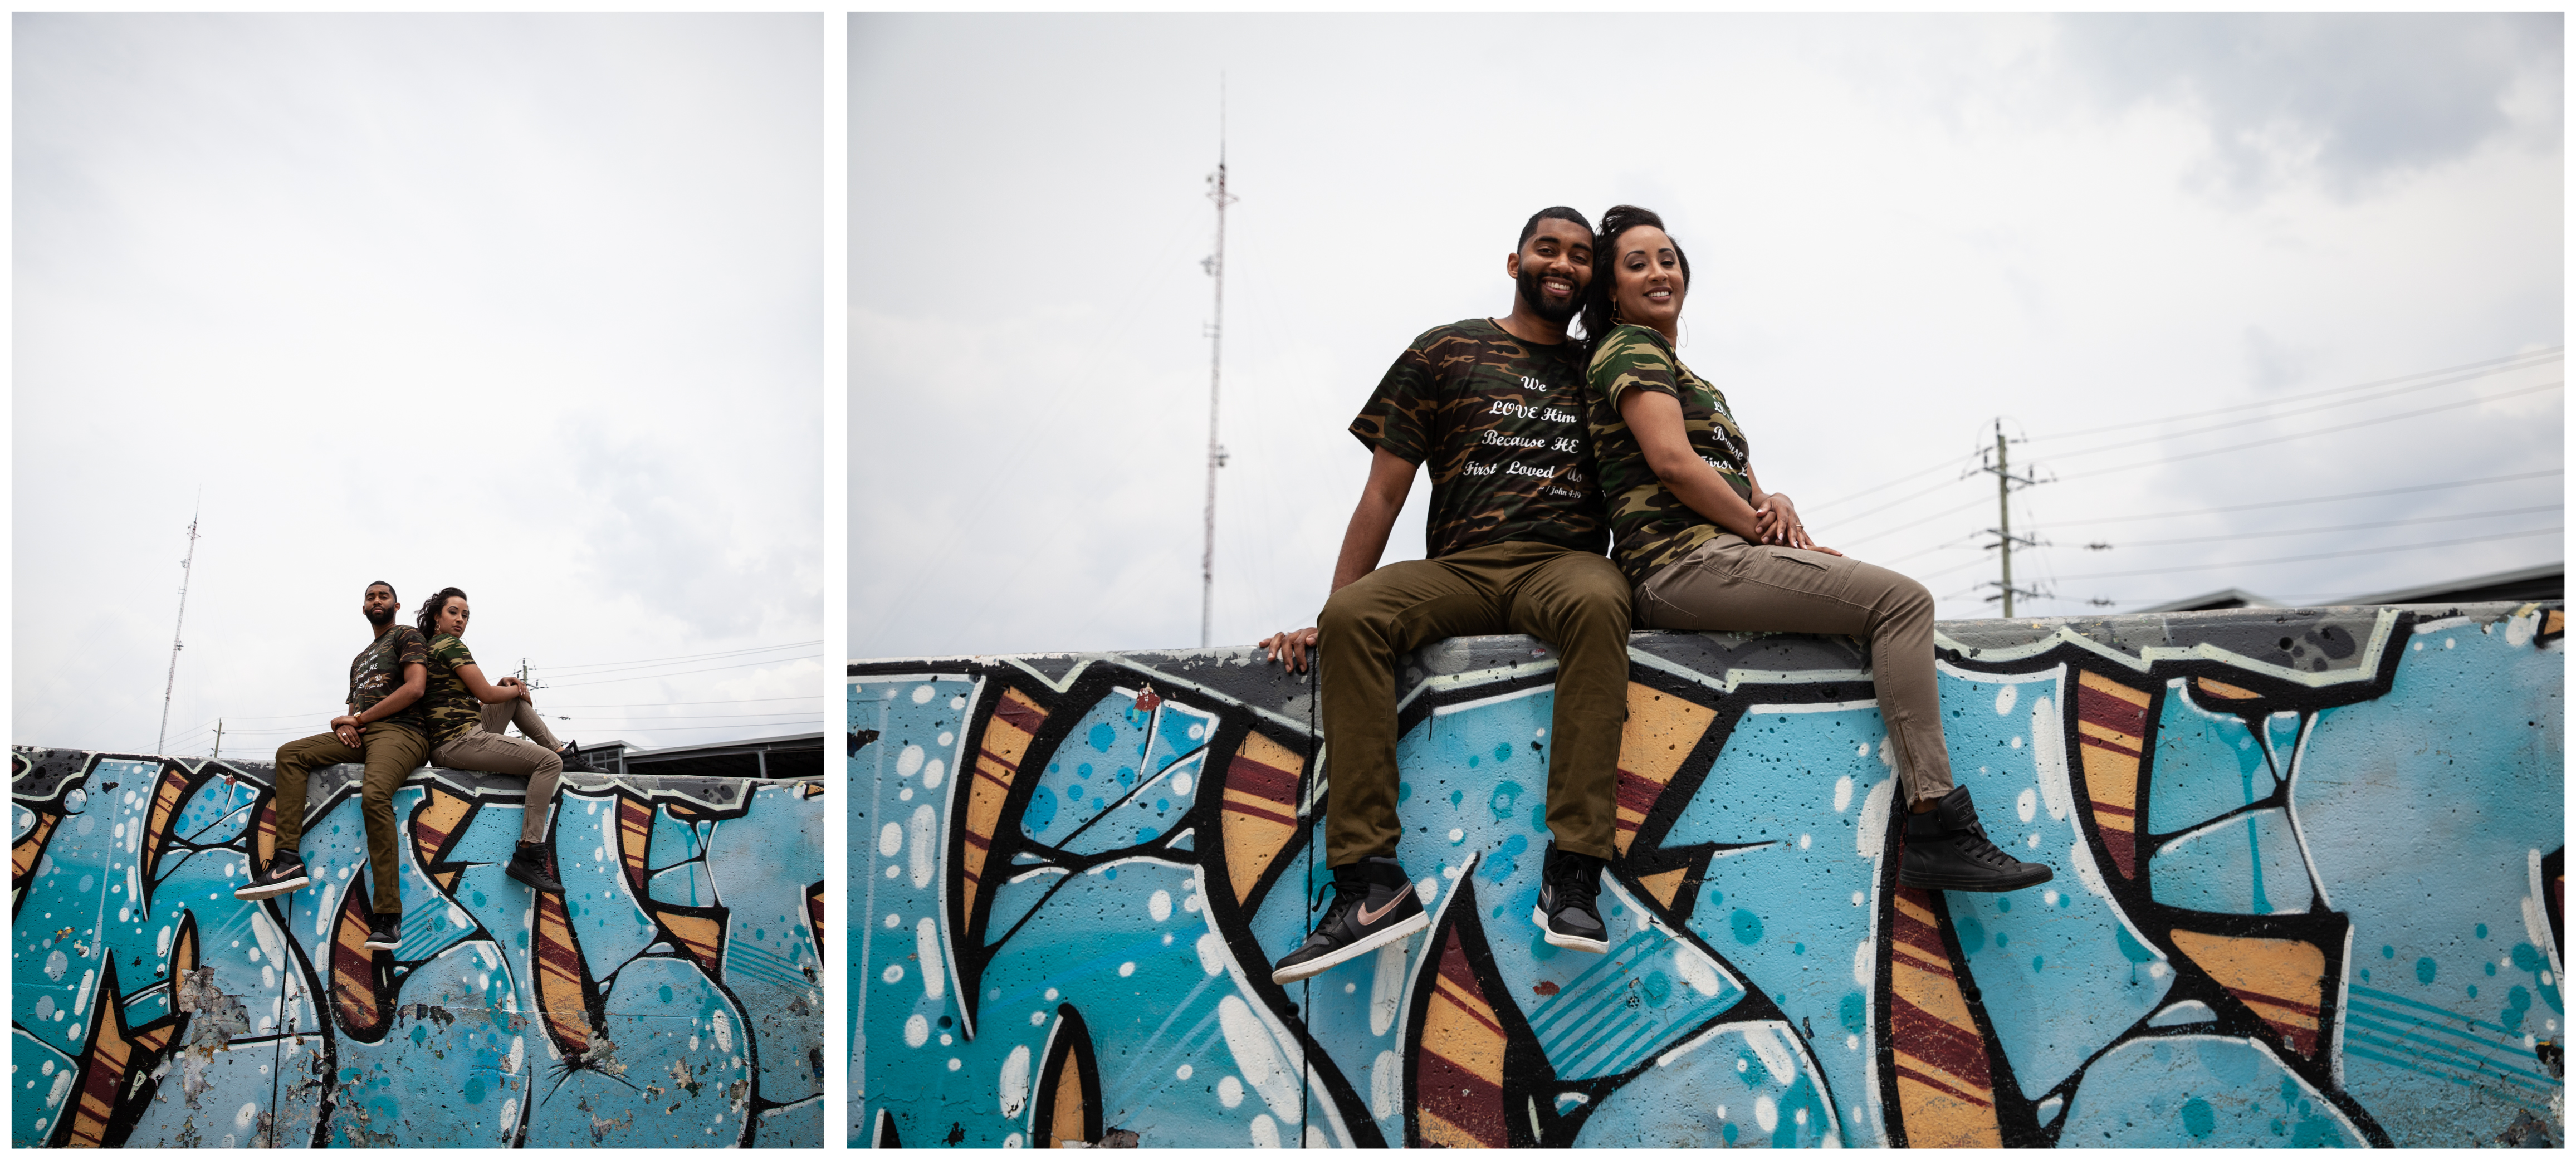 Engagement session at a graffiti wall in Whitby